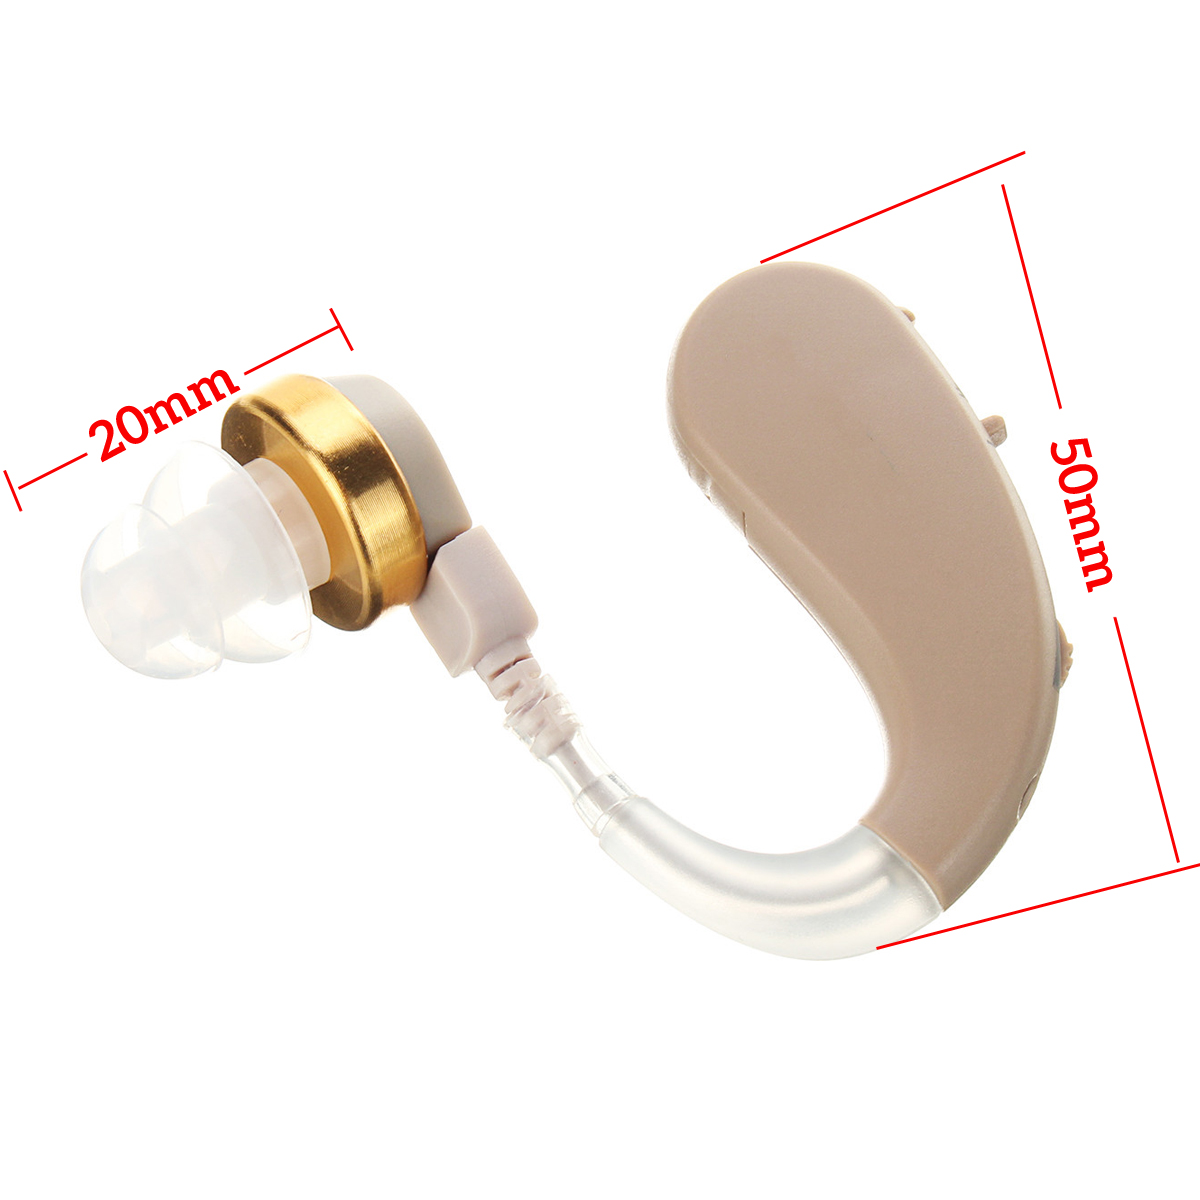 KXW-212 Mini Portable Hearing Aid Ear Amplifier Sound Adjust